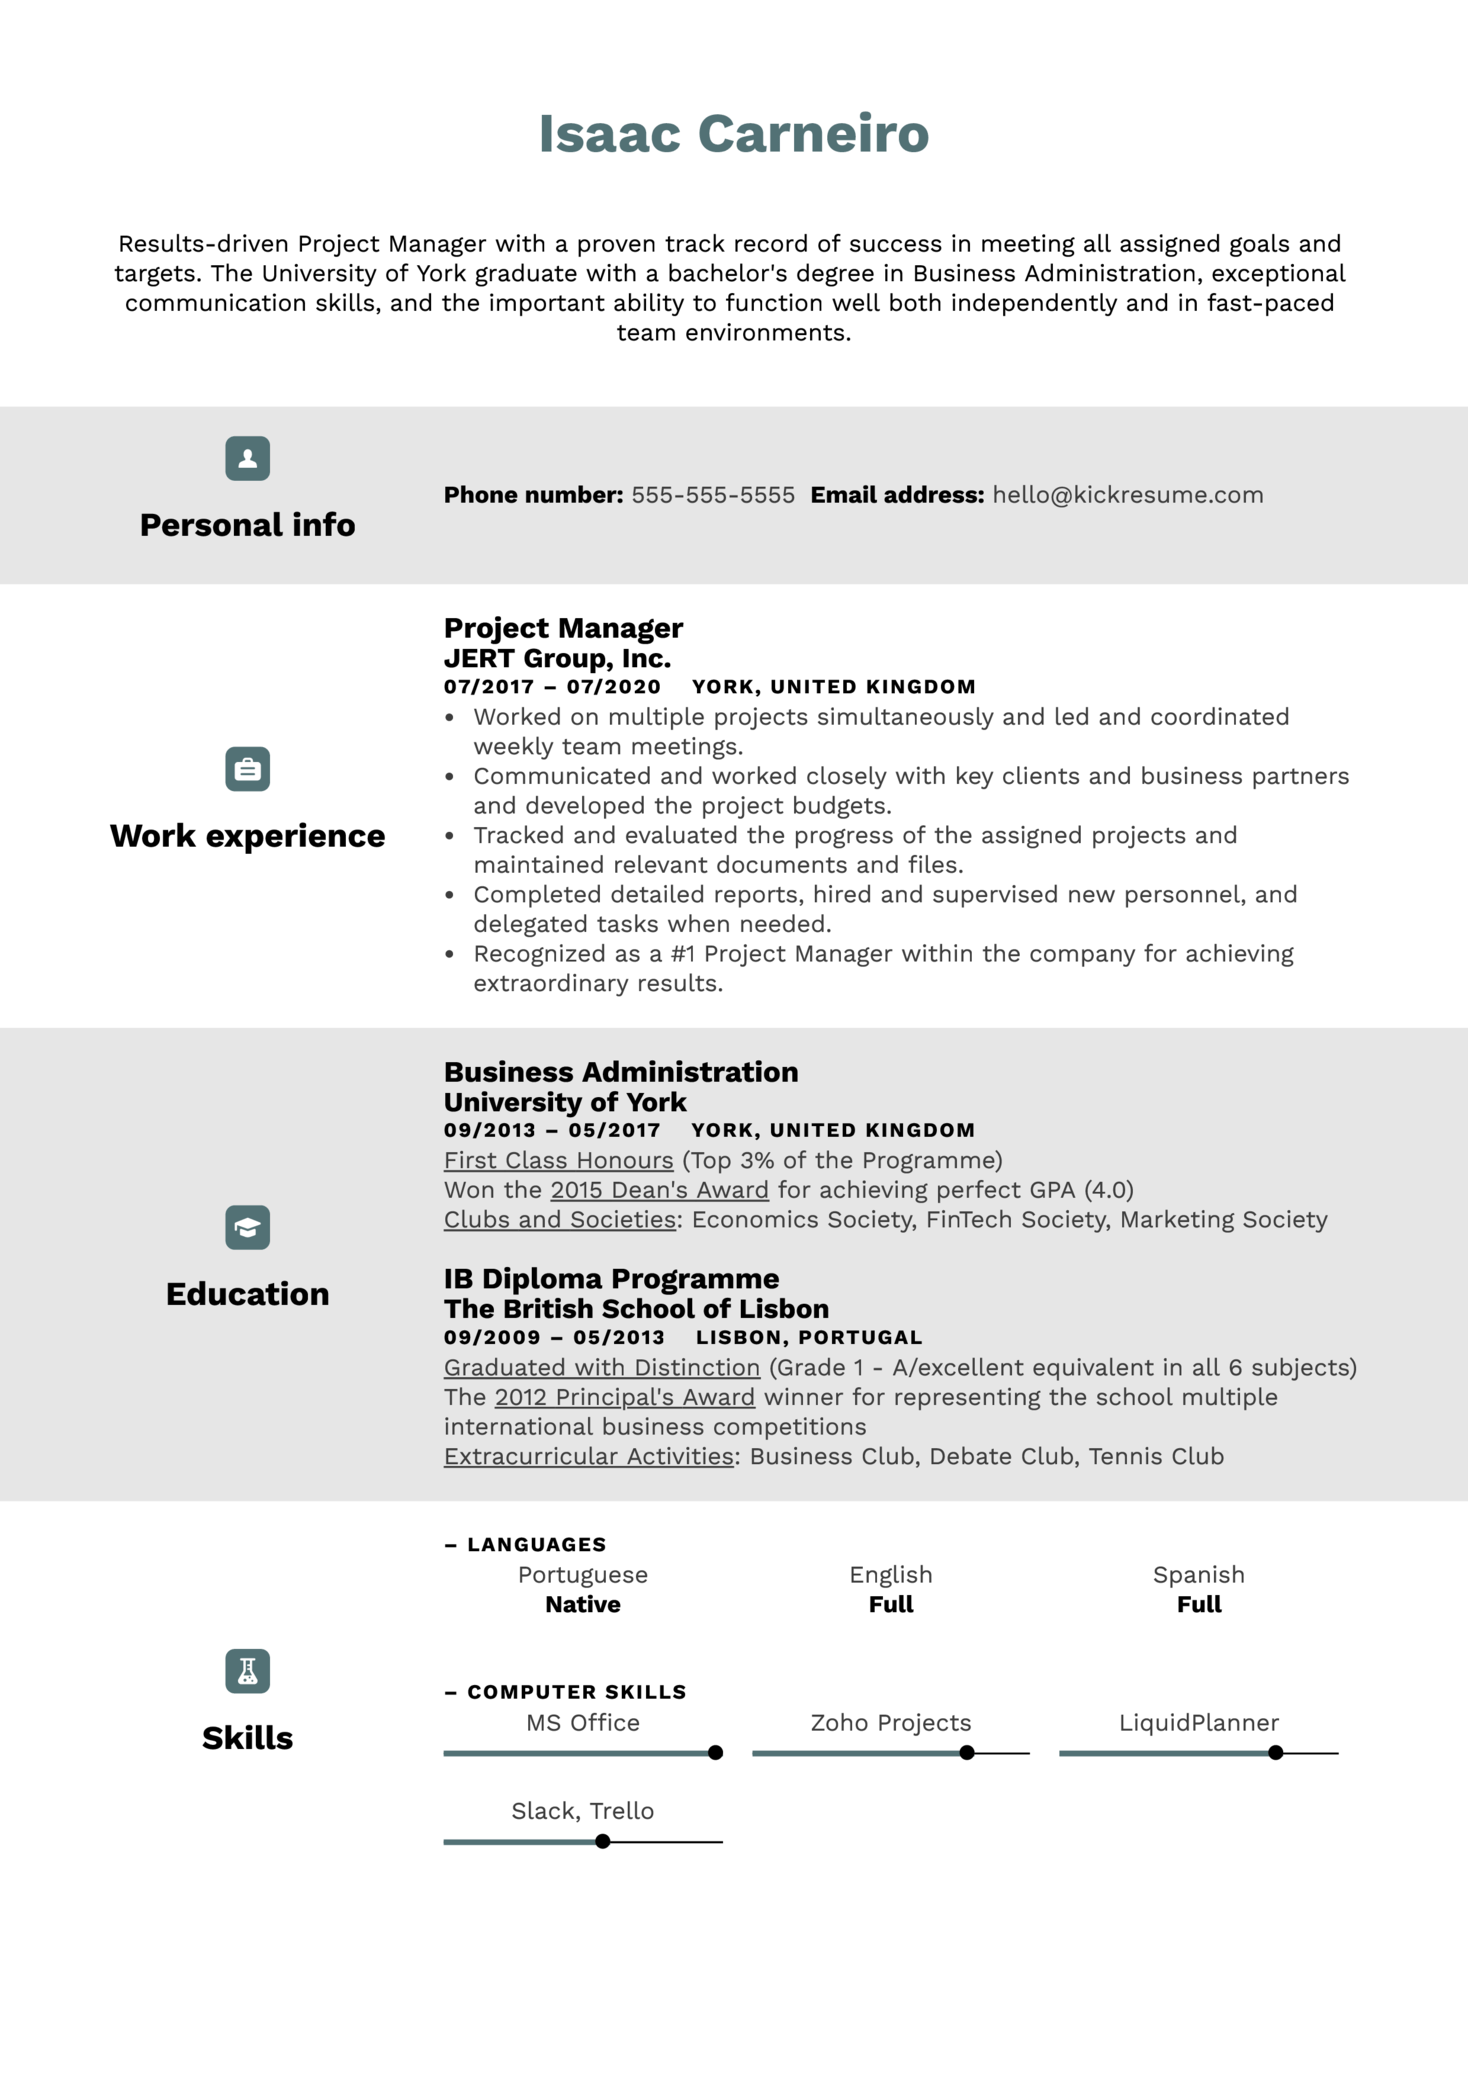 Education on a Resume Example (Part 1)